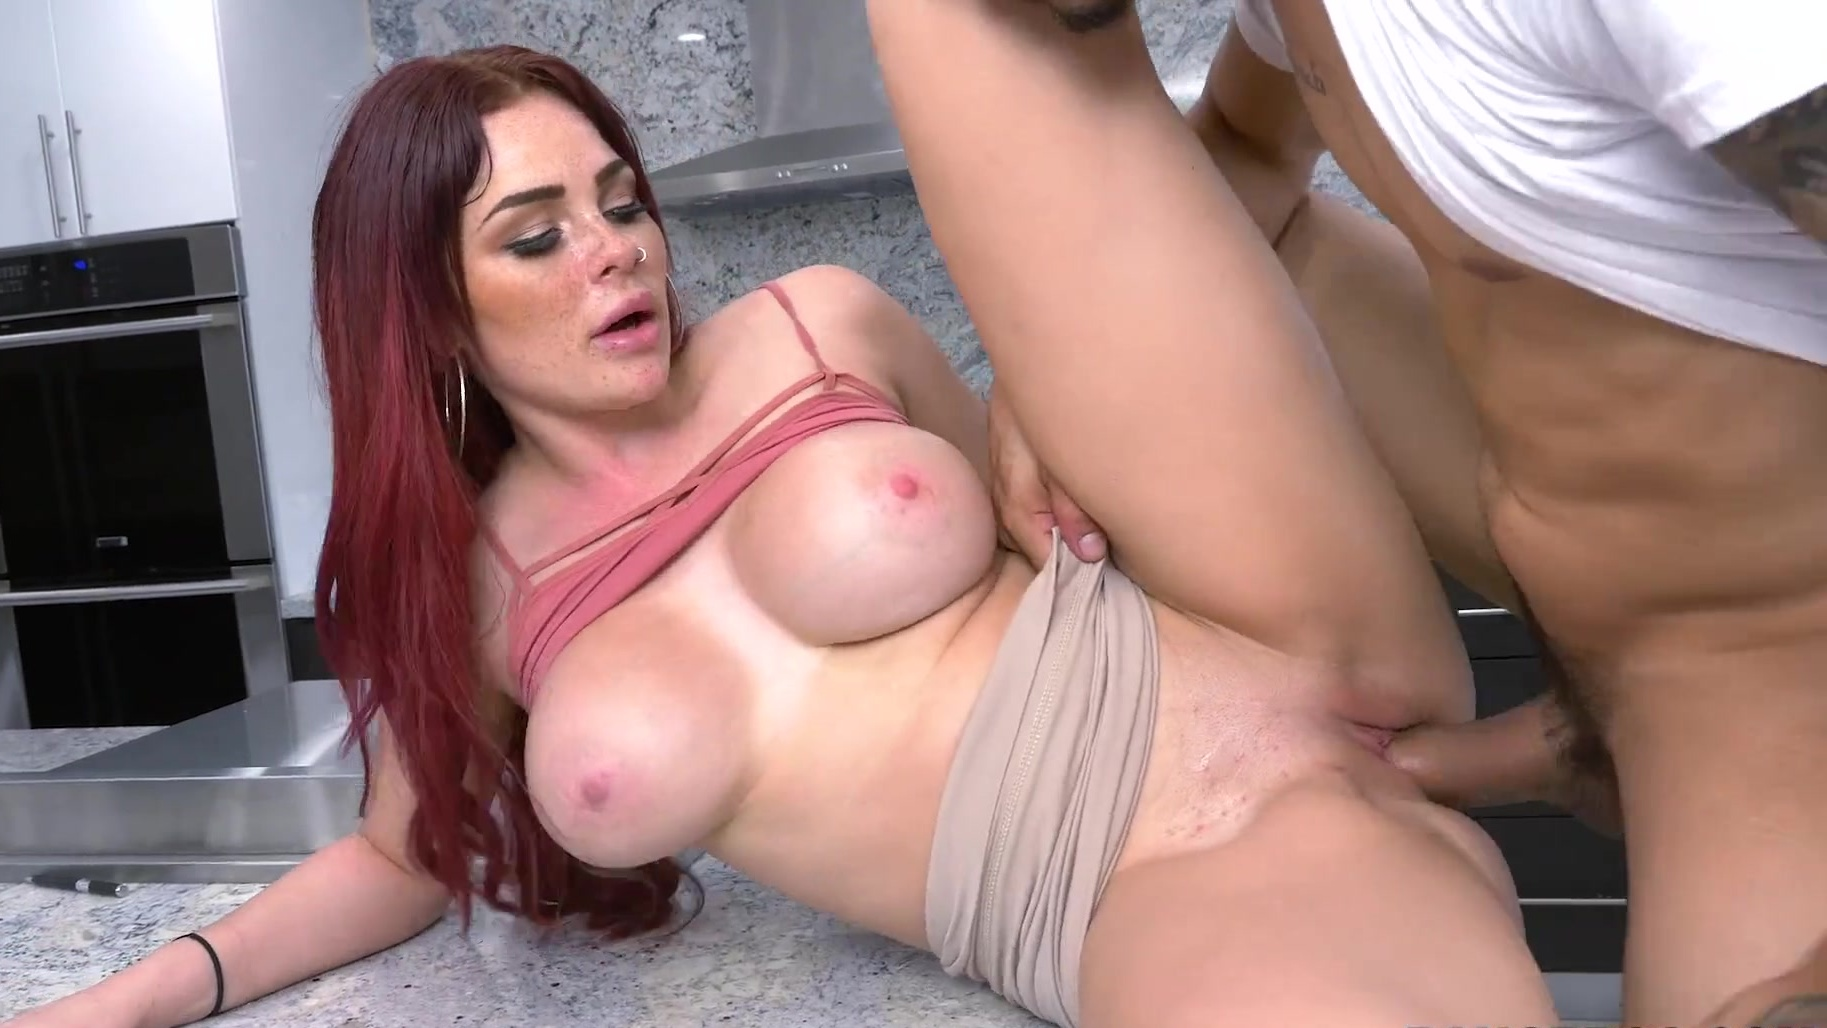 Tits in the movies